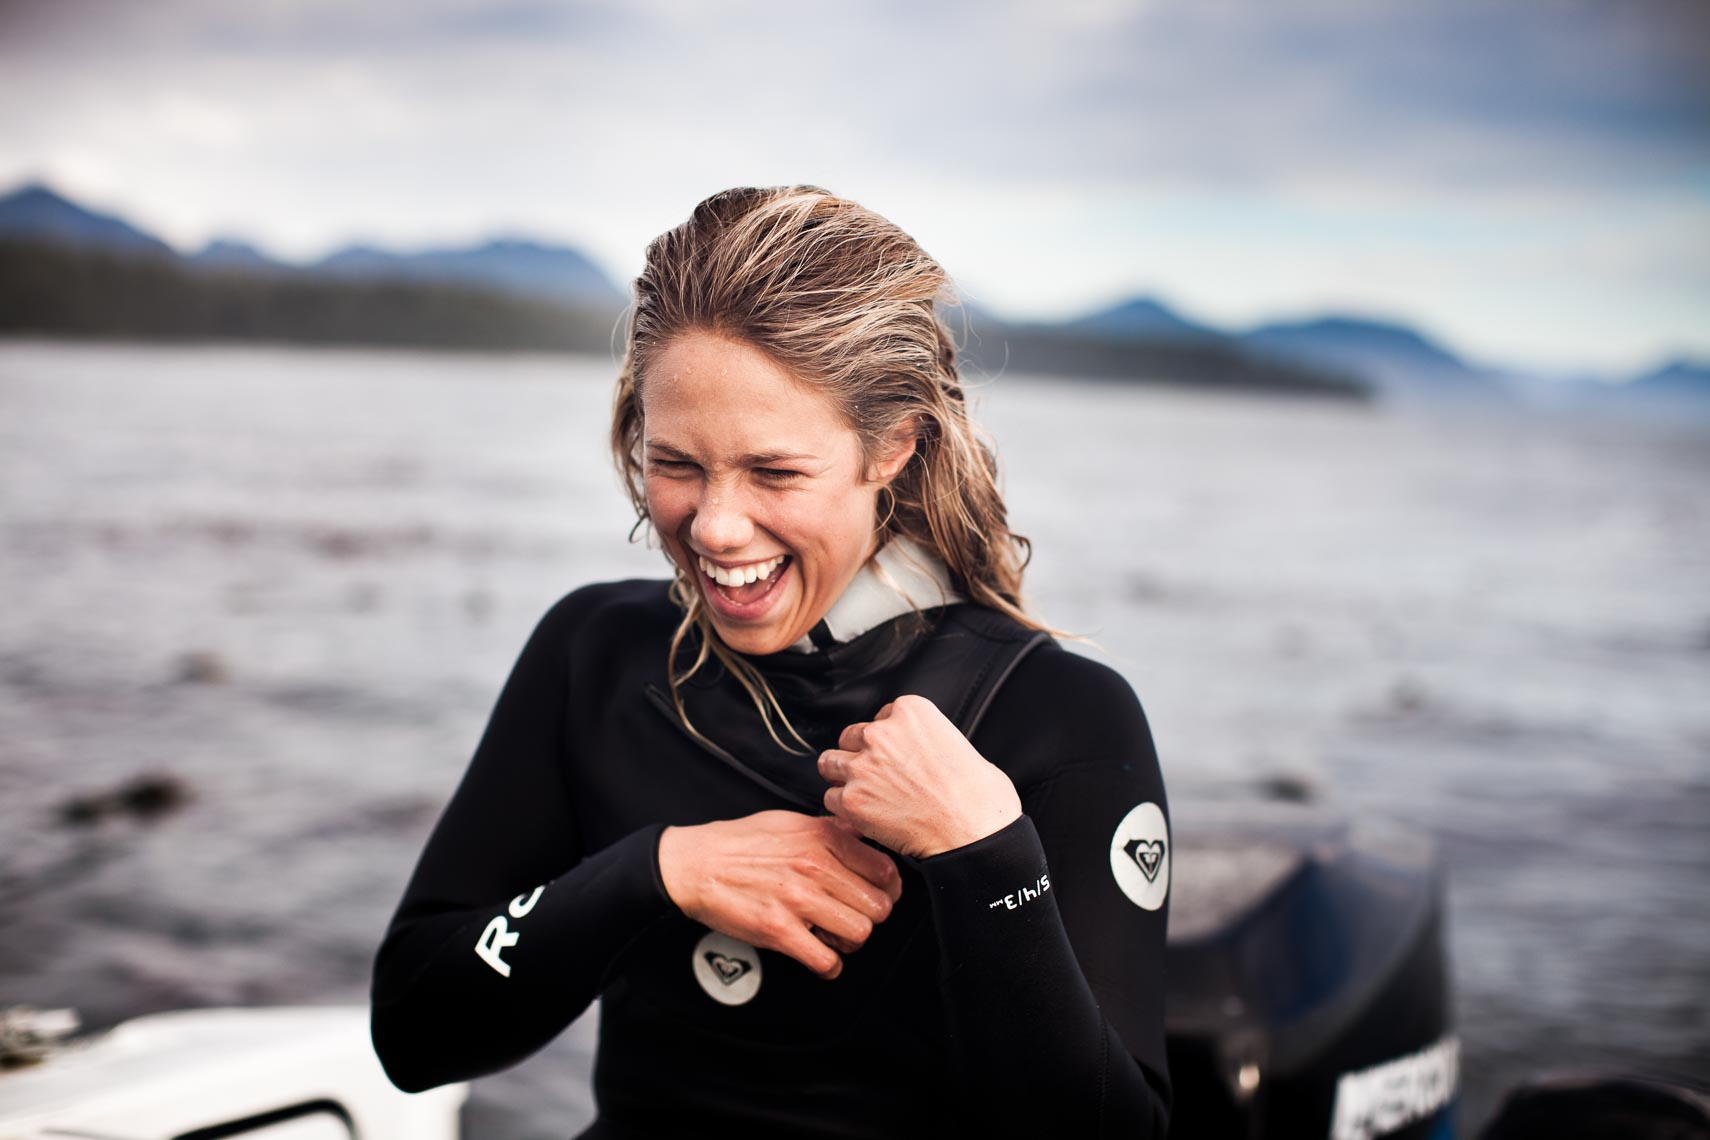 Portrait of pro female surfer in Tofino, British Columbia, Canada